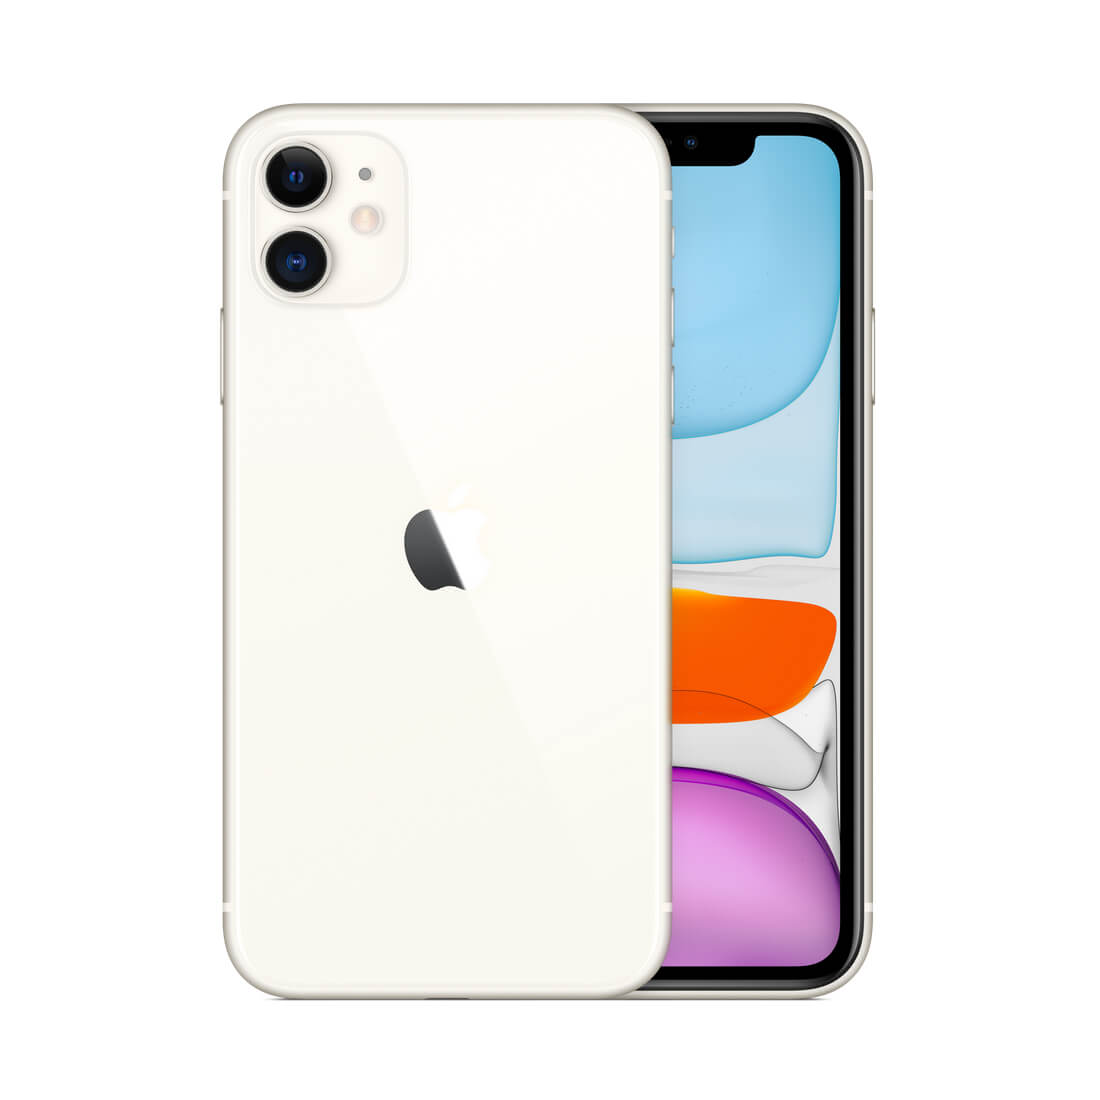 Apple iPhone 11 64Gb White Dual Sim With FaceTime